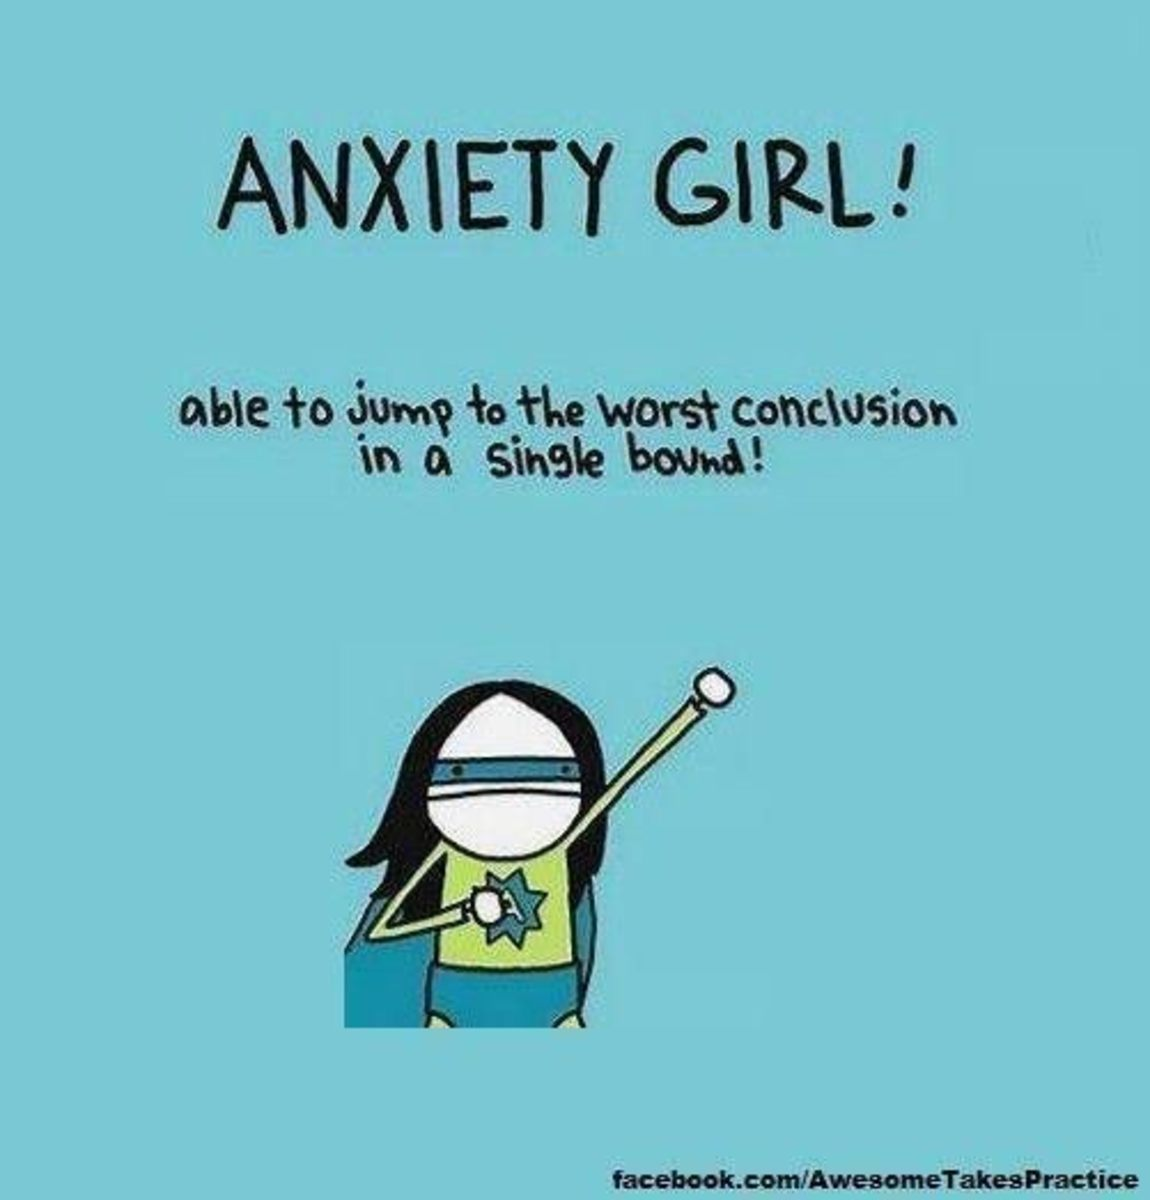 Why Does Anxiety Stop Me Doing Things That Could Help It?